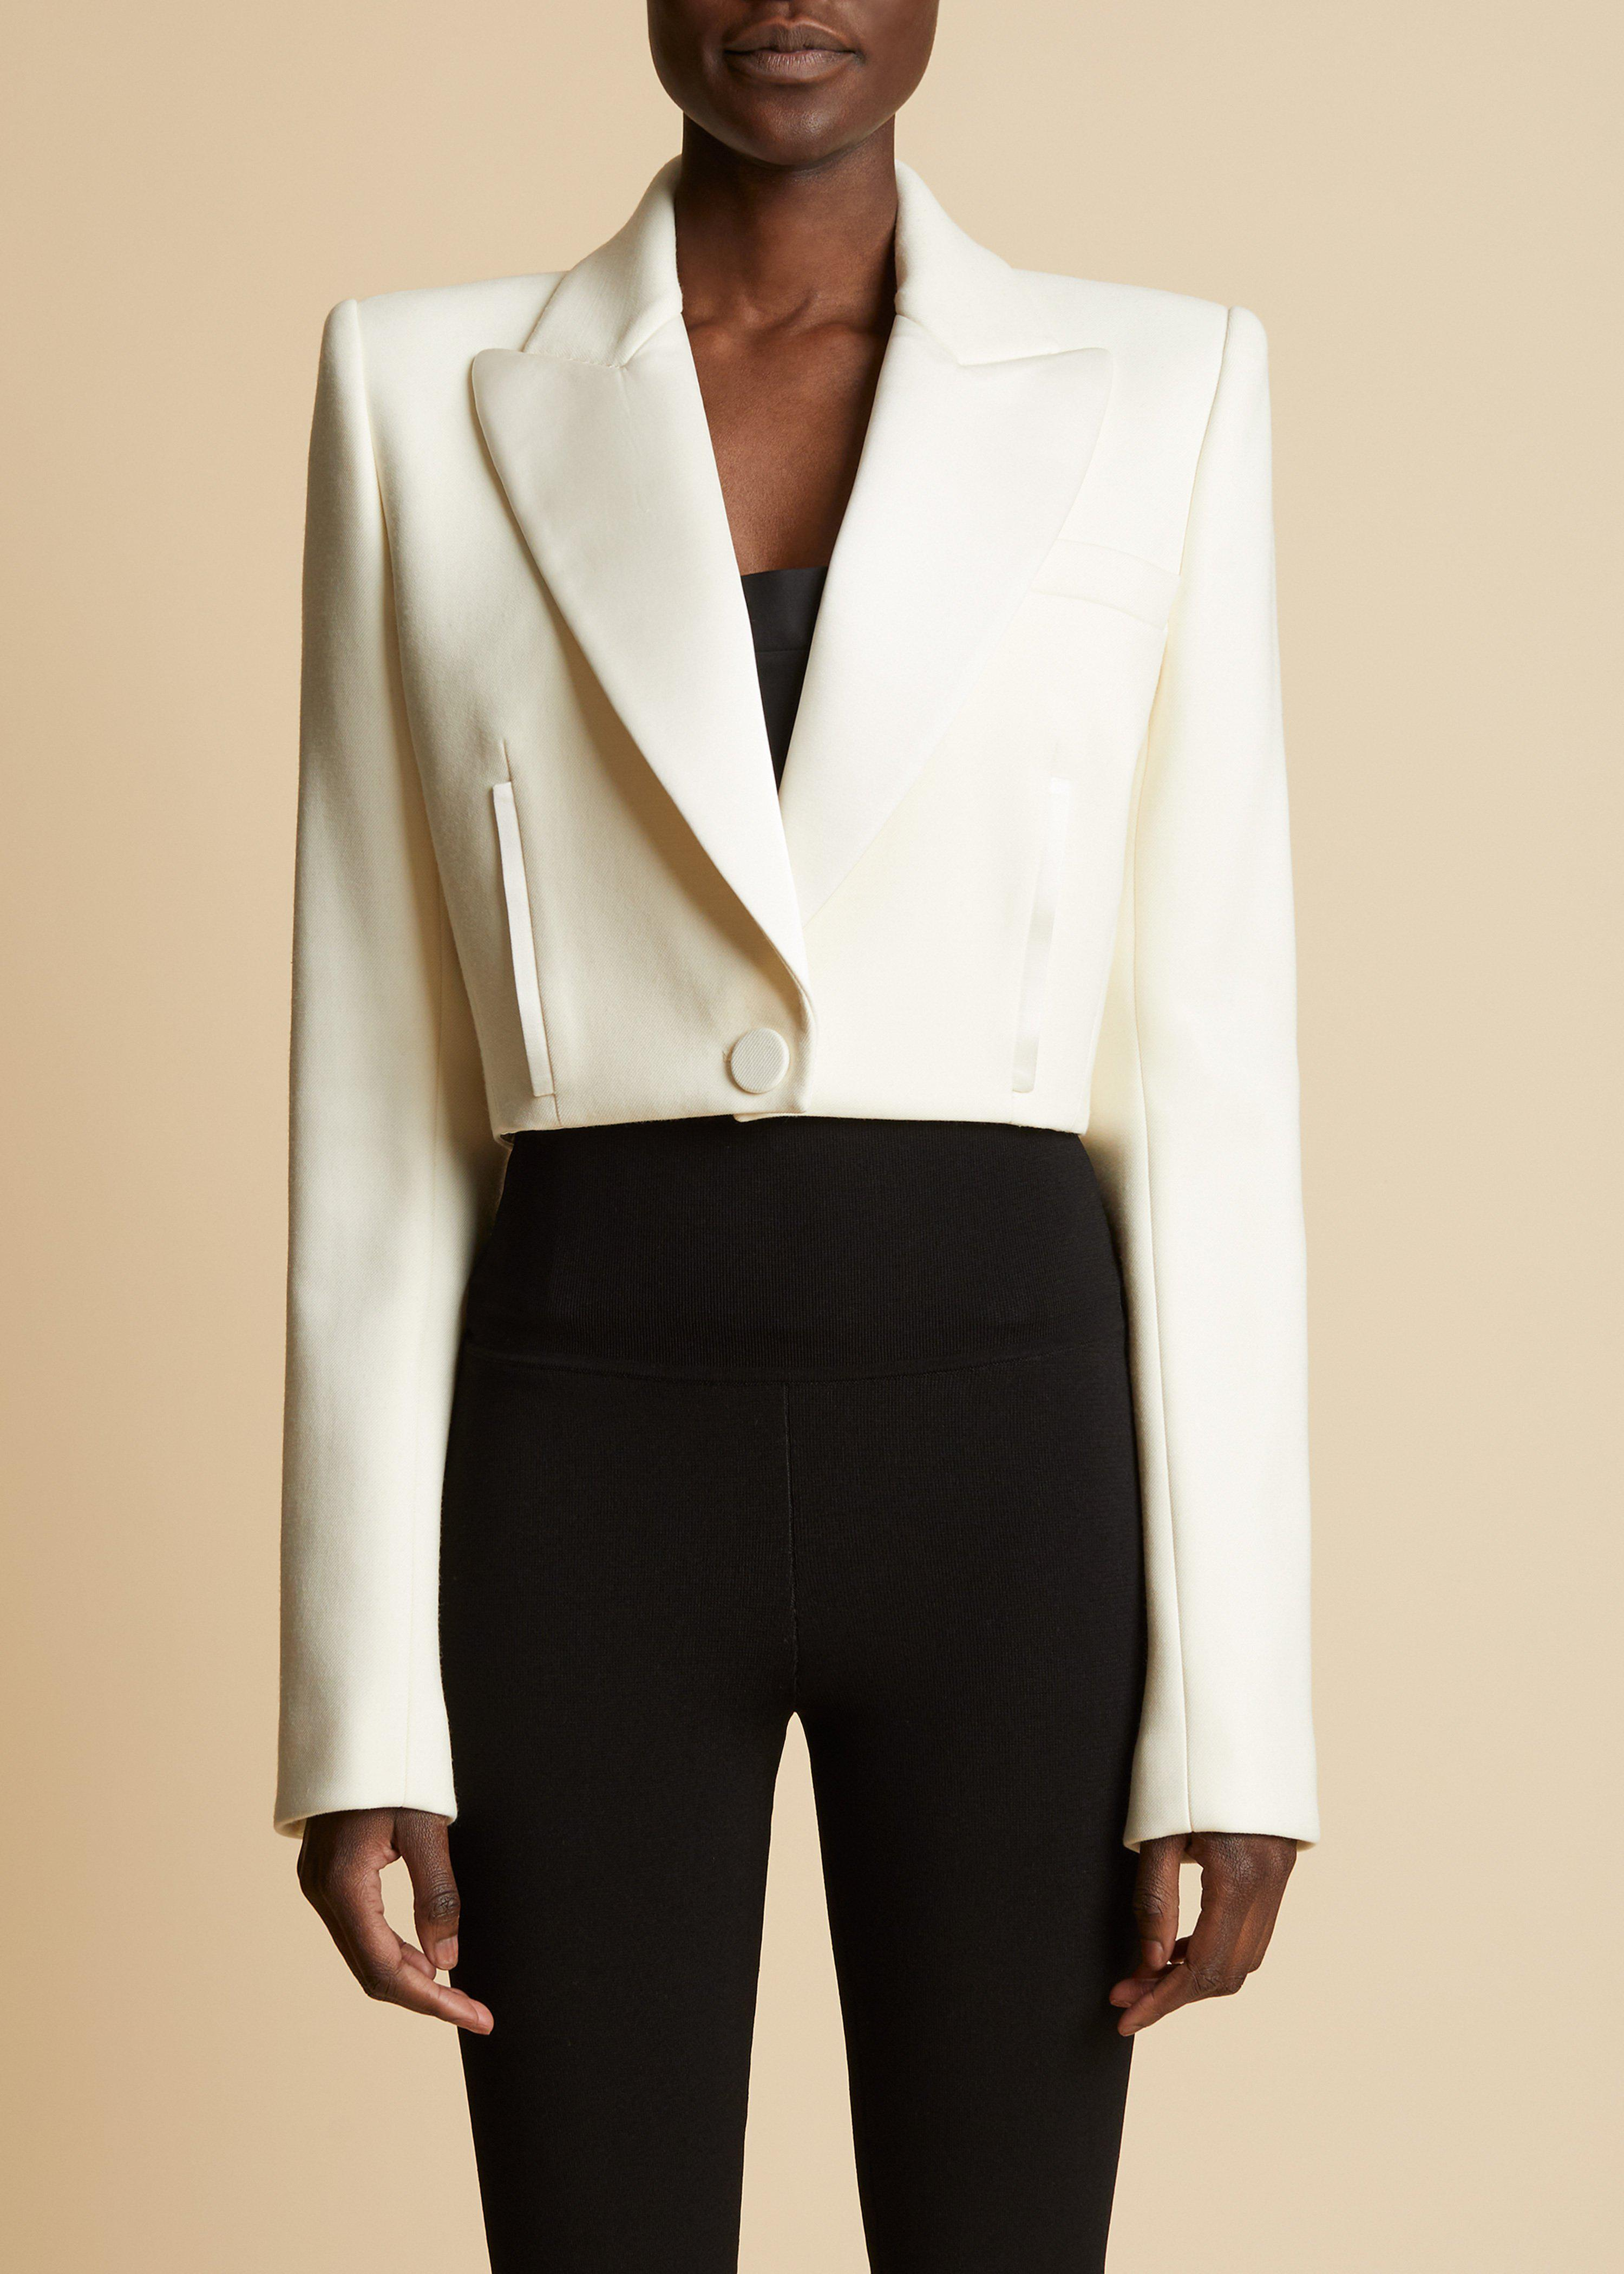 The Lucille Blazer in Ivory